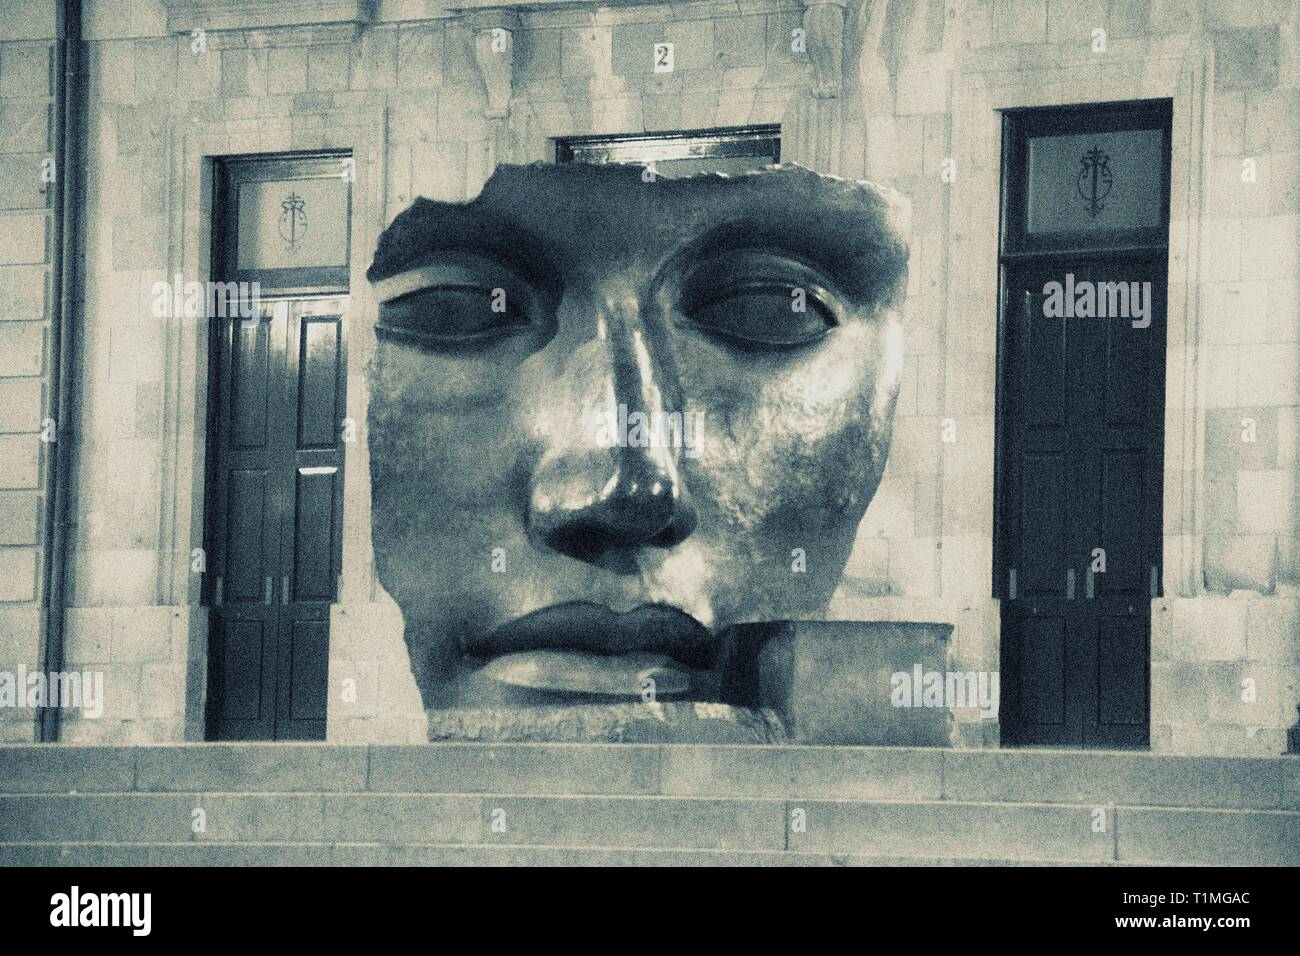 Culpture buildings with faces - Stock Image